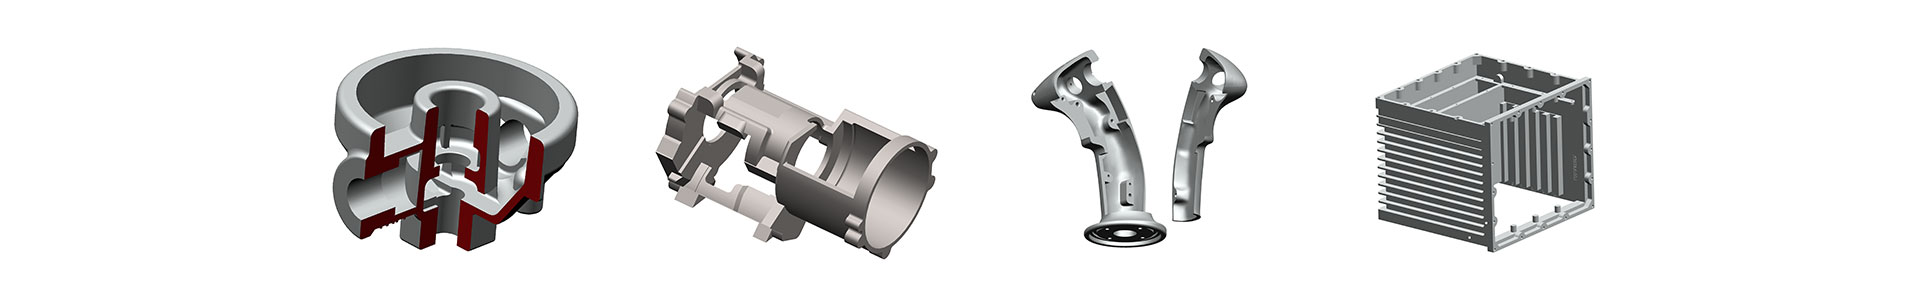 Aerospace Castings Manufacturer, Aerospace Investment